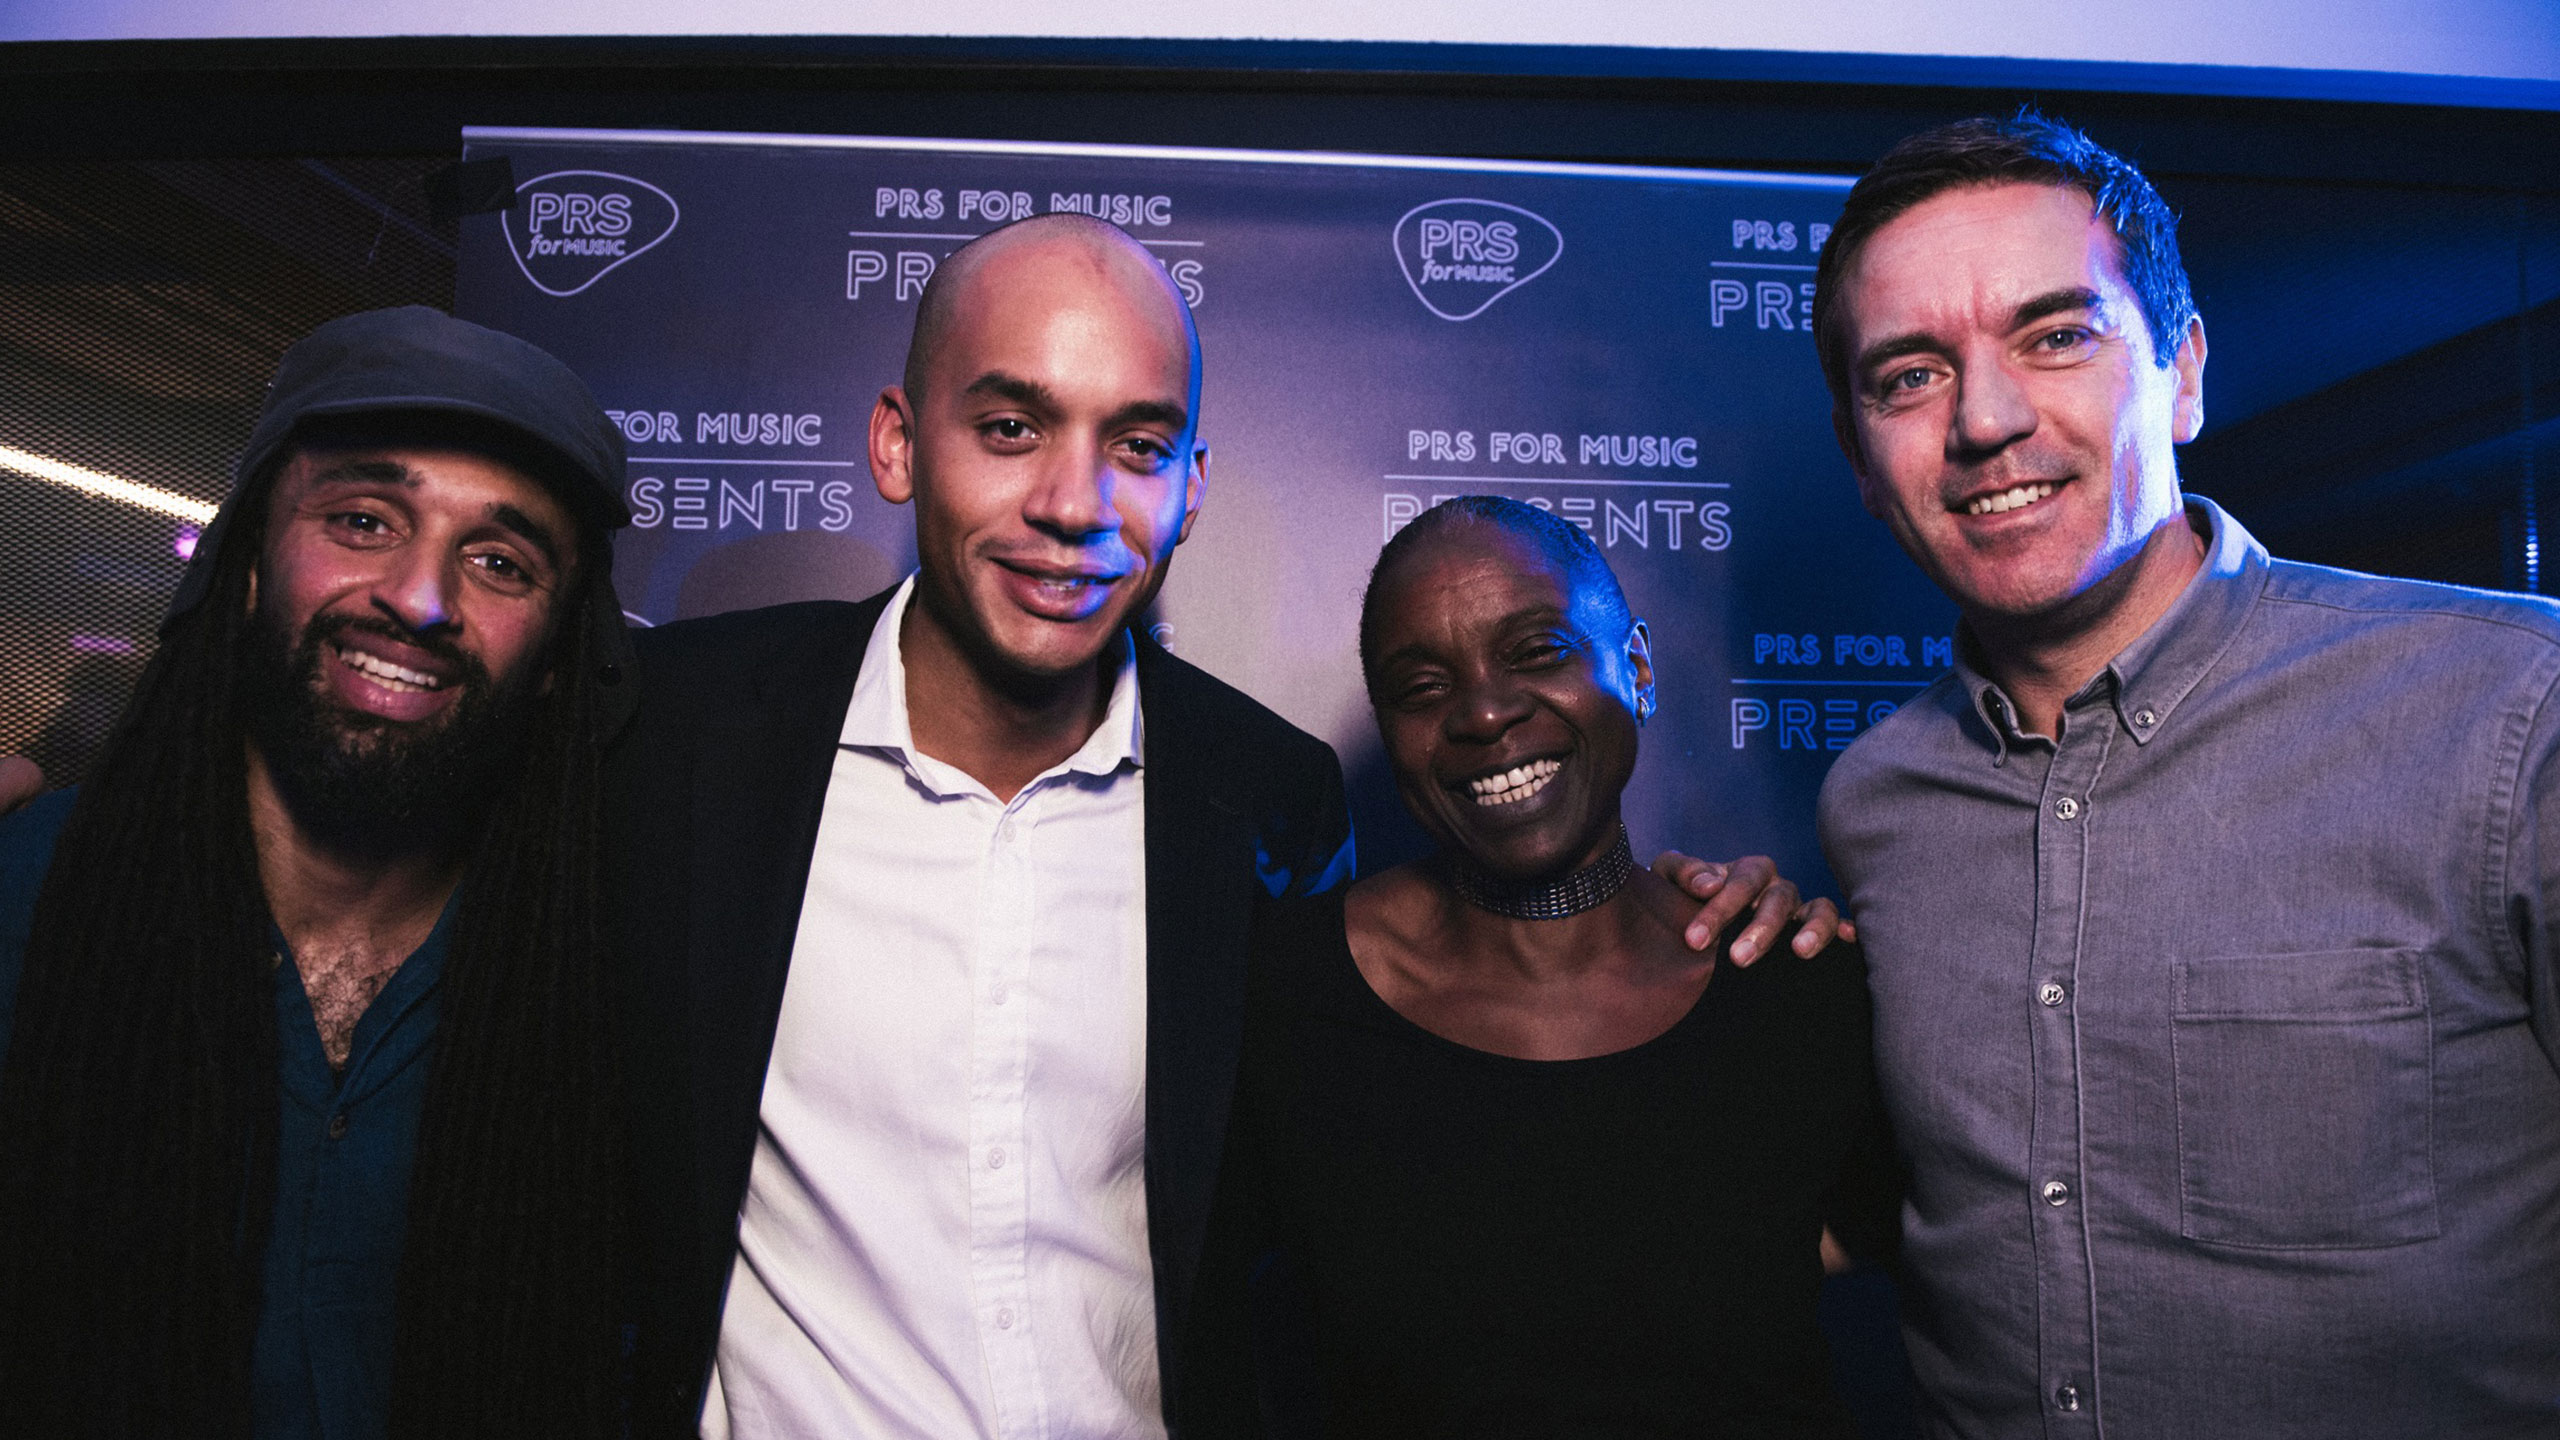 Andrew Ashong with Chuka Umunna and PRS for Music staff at PRS for Music Presents in Streatham